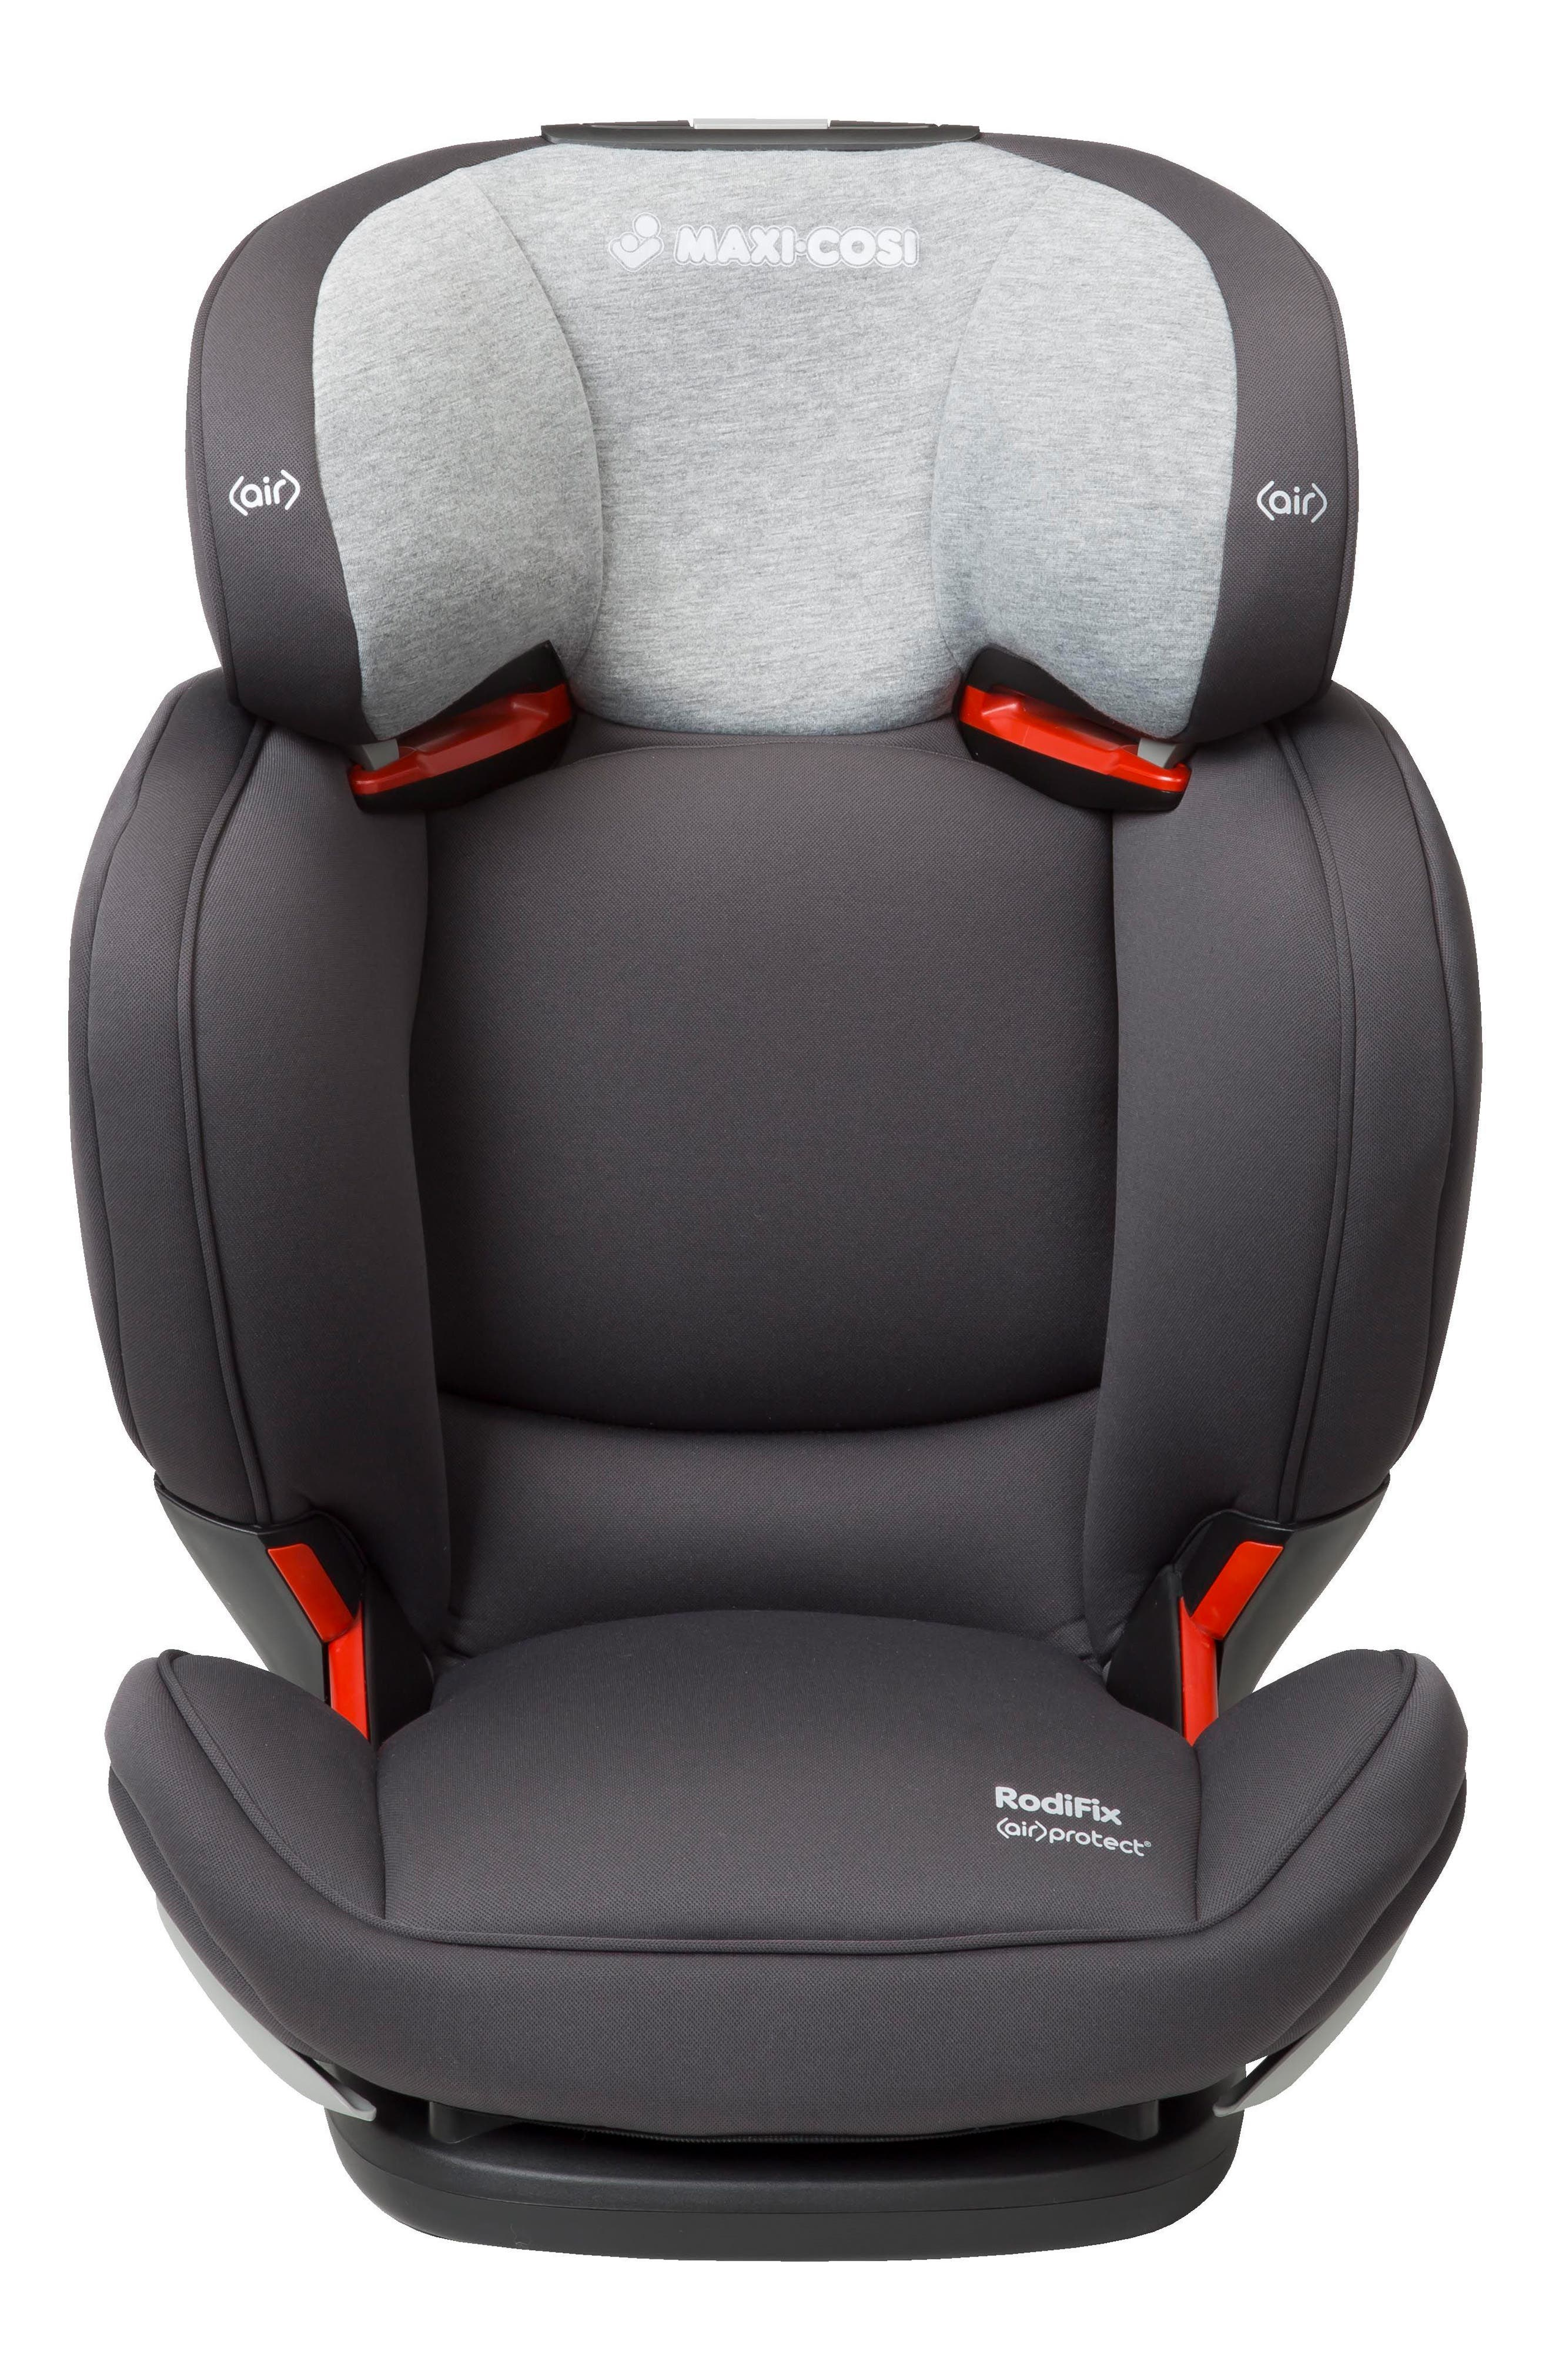 RodiFix Booster Car Seat,                             Alternate thumbnail 18, color,